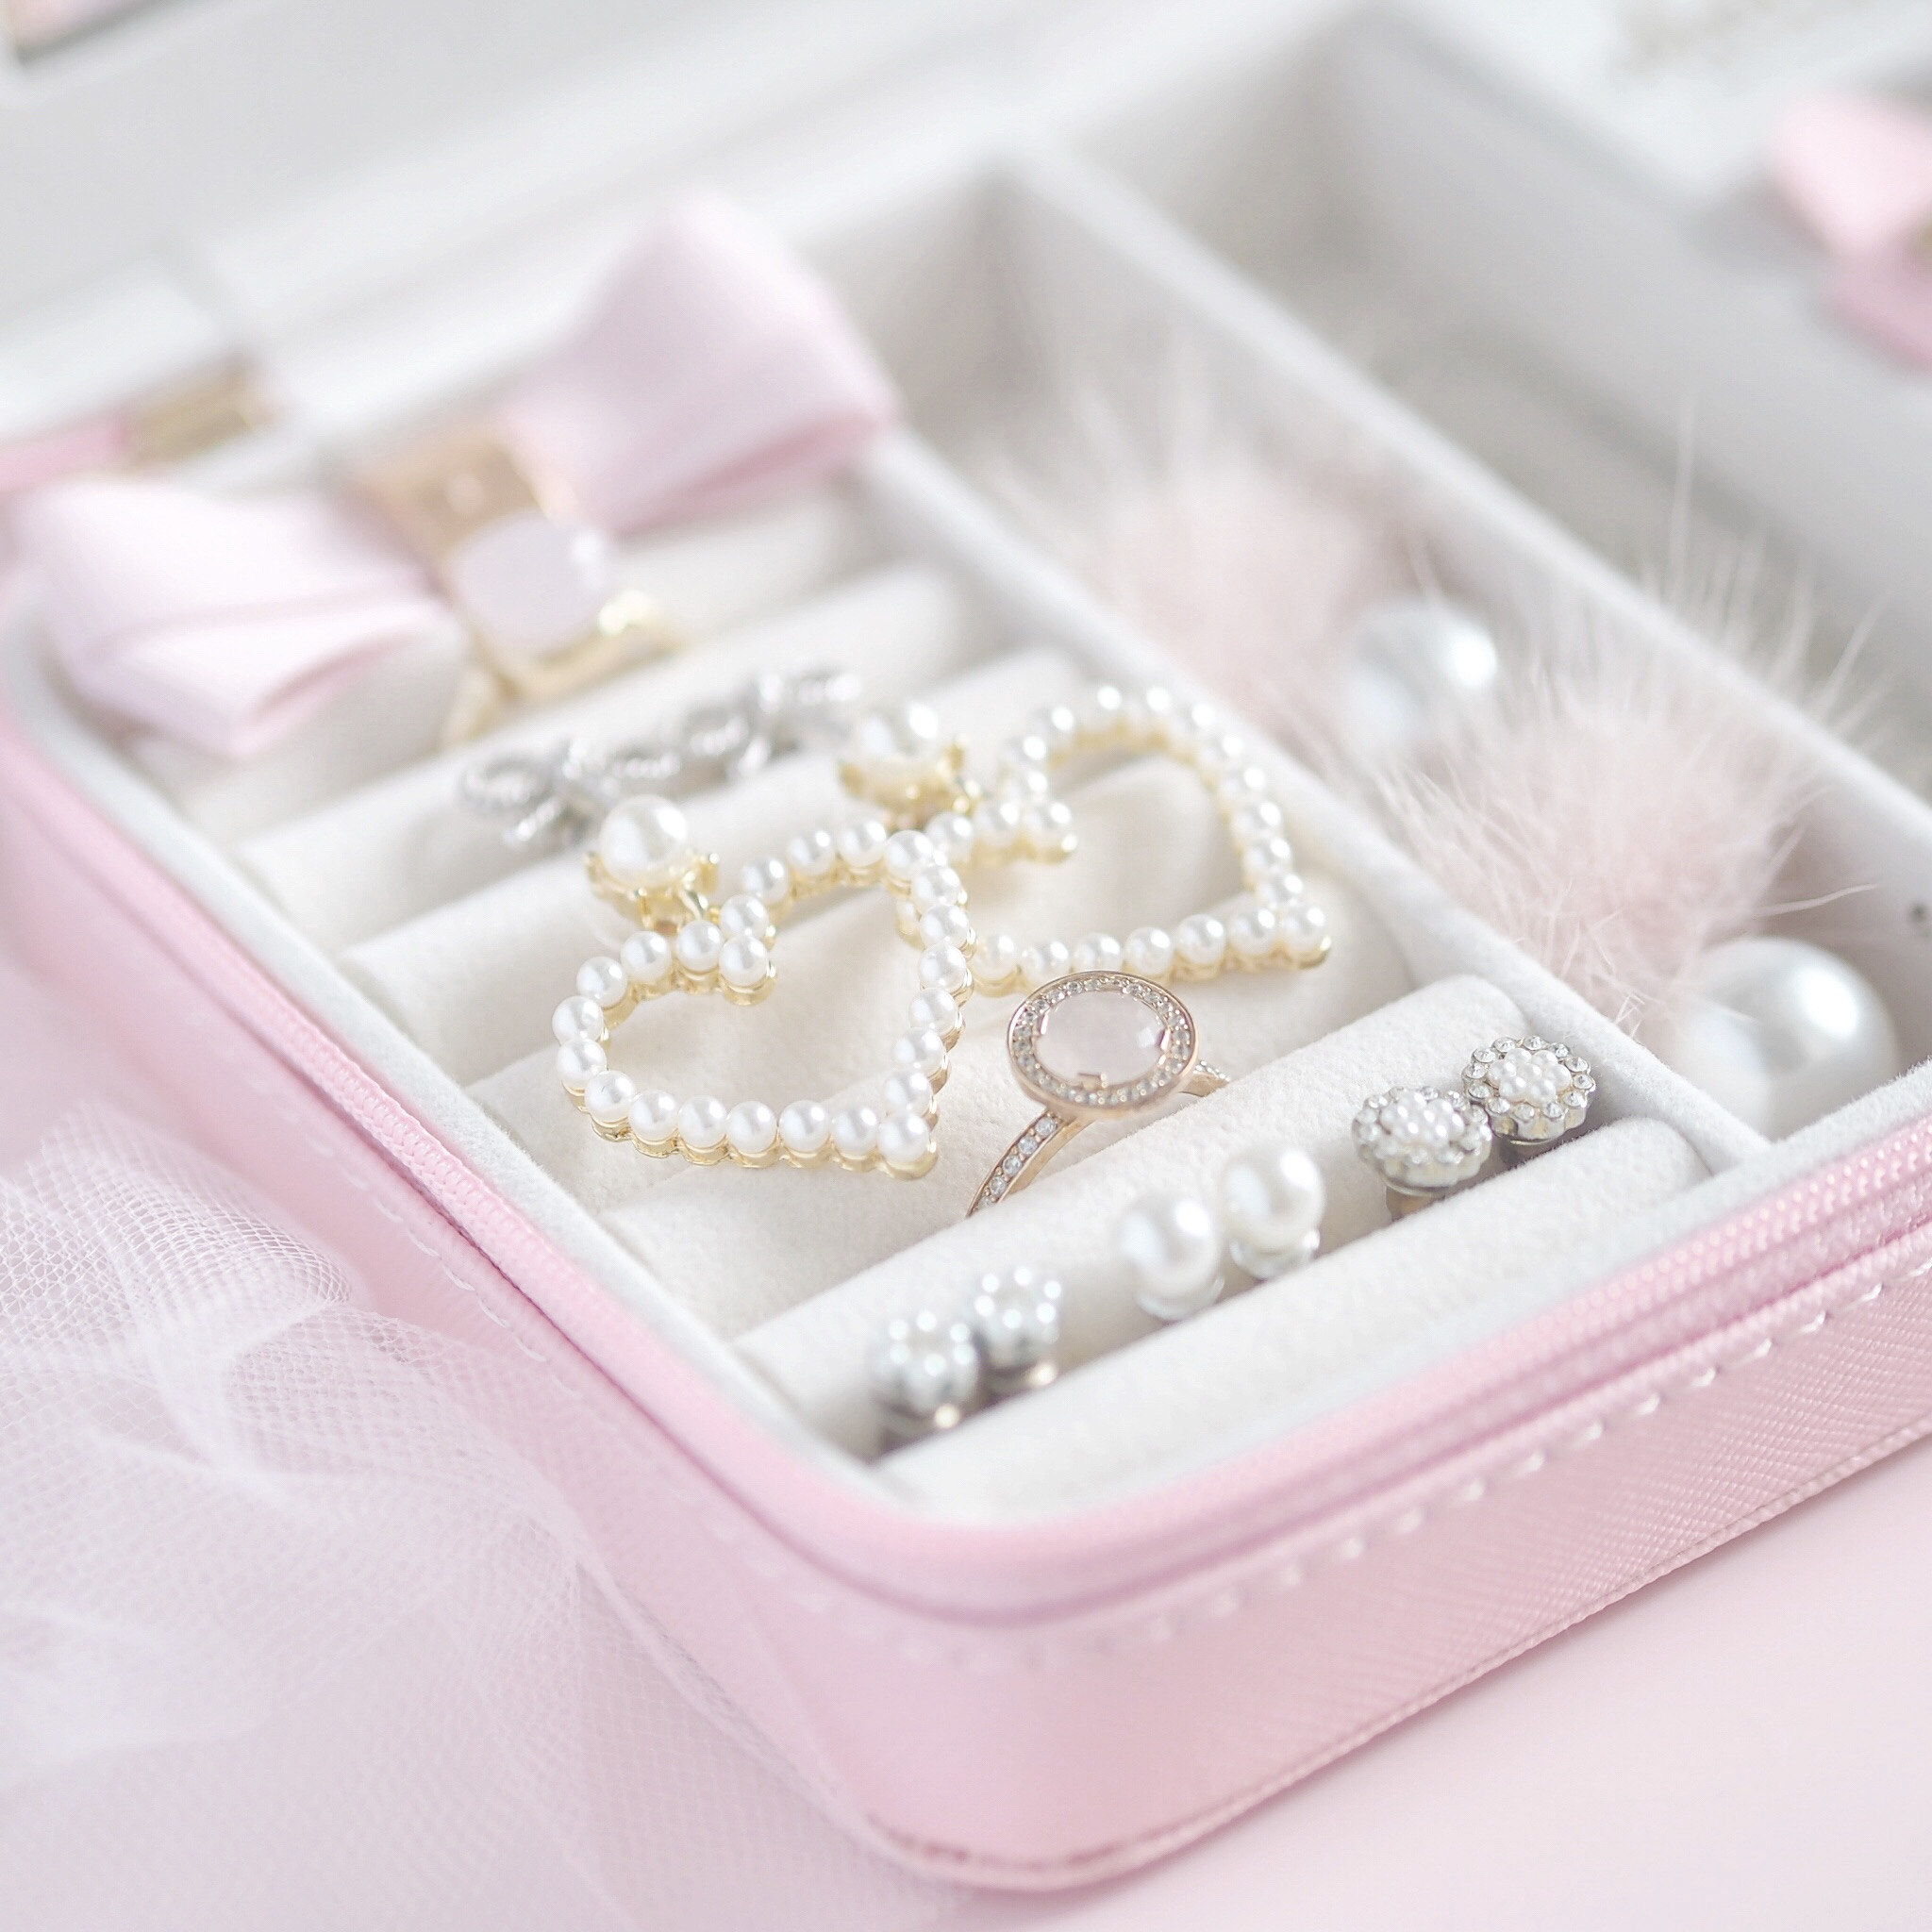 Fit For A Princess: The Dreamiest Pink Jewellery Case SLMissGlam | Love Catherine